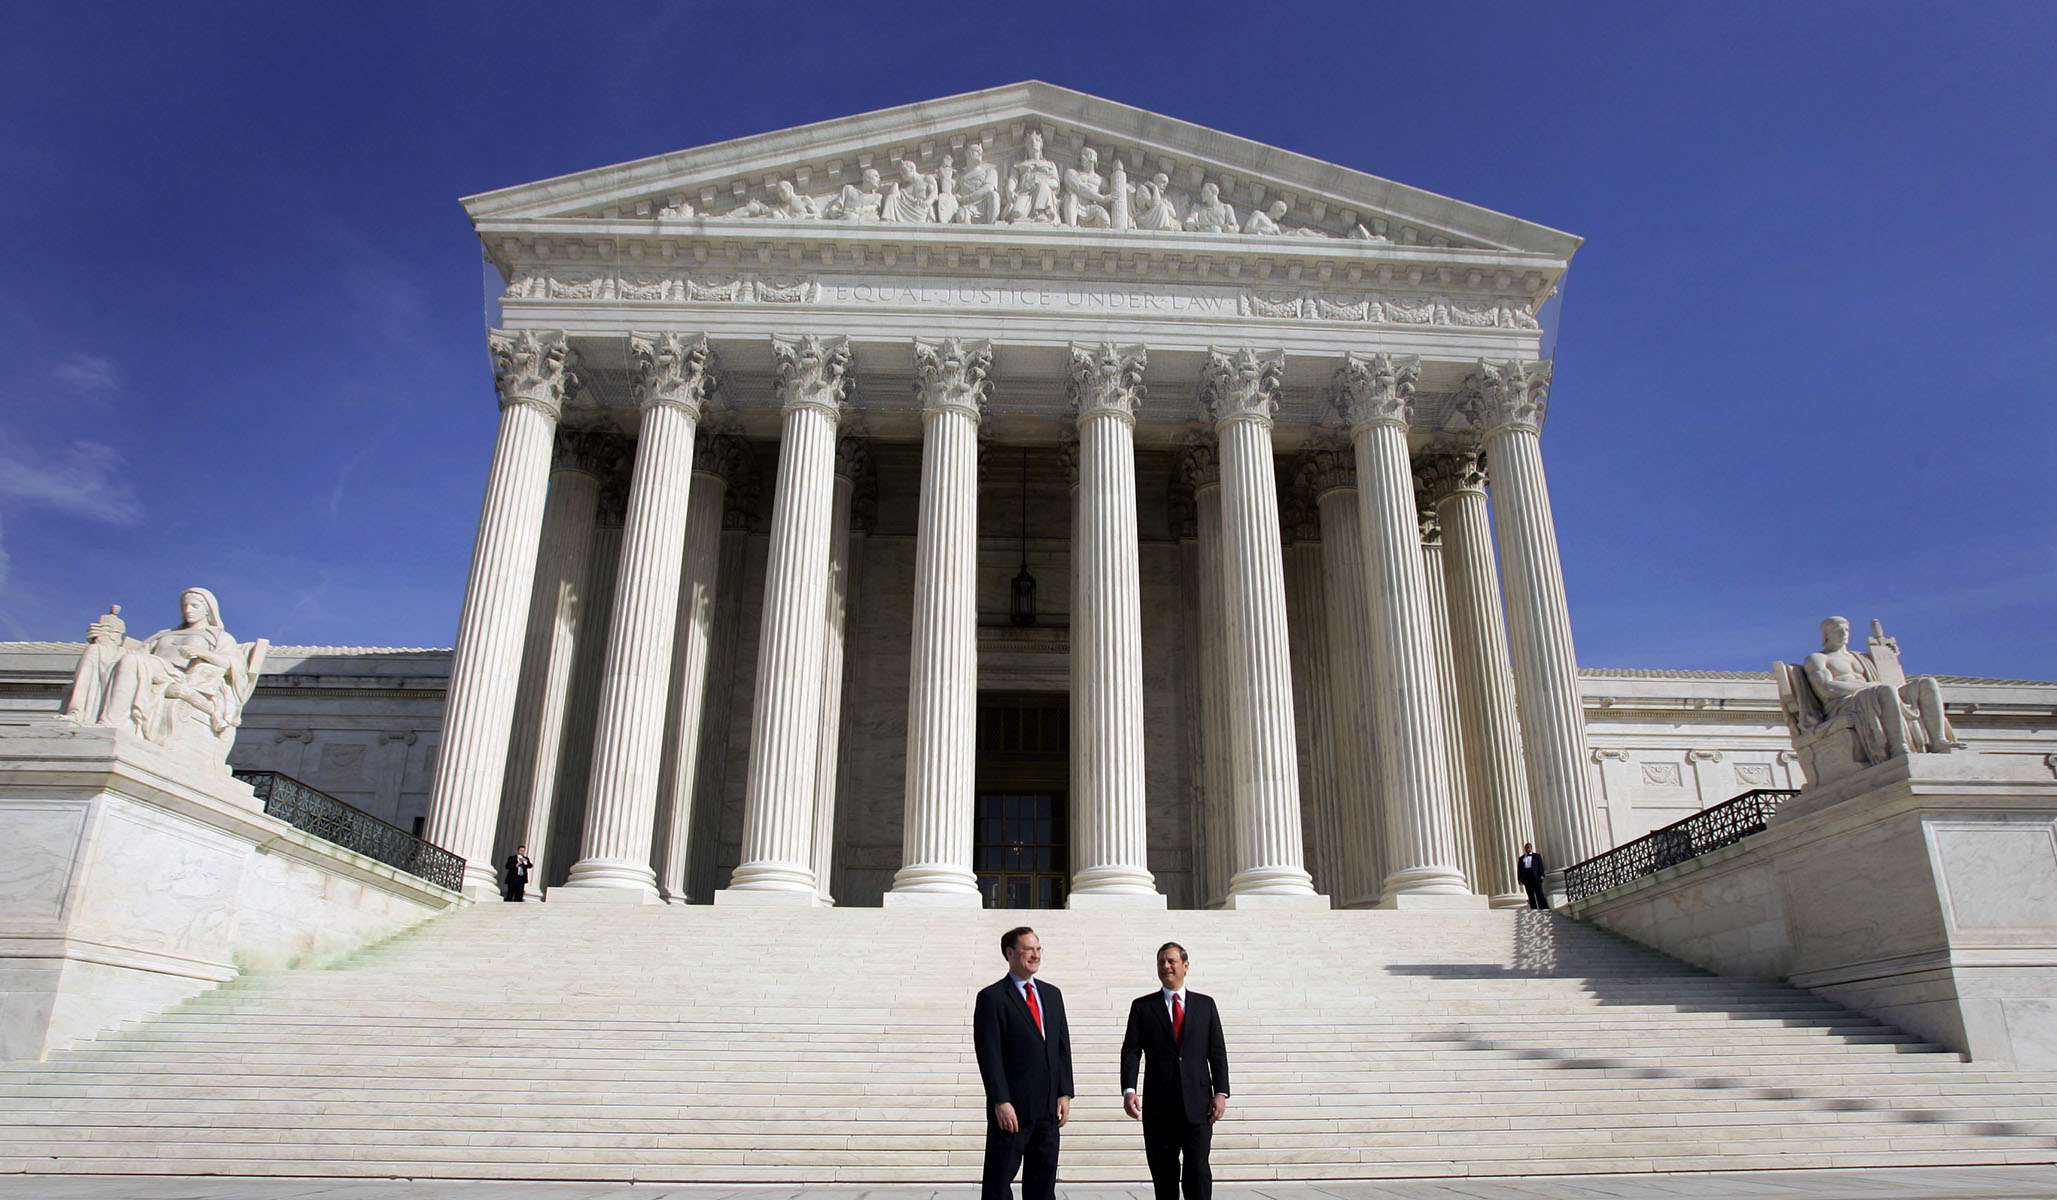 This Day in Liberal Judicial Activism—January 26